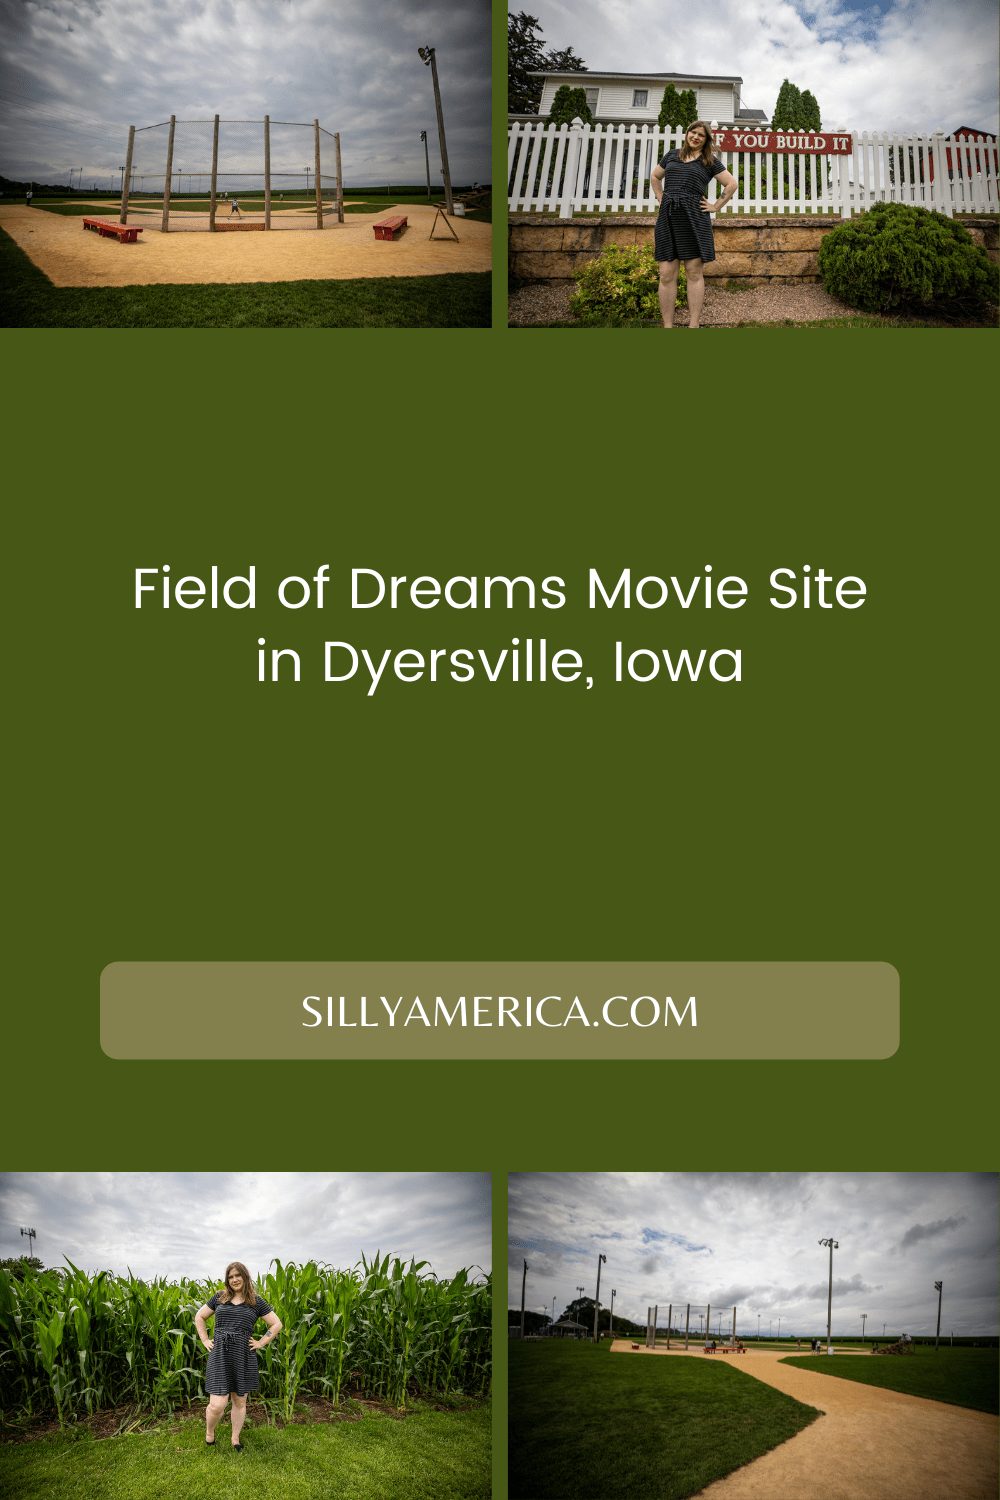 """The iconic movie line goes, """"If you build it he will come."""" And on this Iowa farm they actually built it and over 30 years later, tourists are still coming to check out the Field of Dreams movie site in Dyersville, Iowa. #movie #fieldofdreams #IowaRoadsideAttractions #IowaRoadsideAttraction #RoadsideAttractions #RoadsideAttraction #RoadTrip #IowaRoadTrip #IowaThingsToDo #IowaRoadTripBucketLists #IowaBucketList #IowaRoadTripIdeas #IowaTravel"""